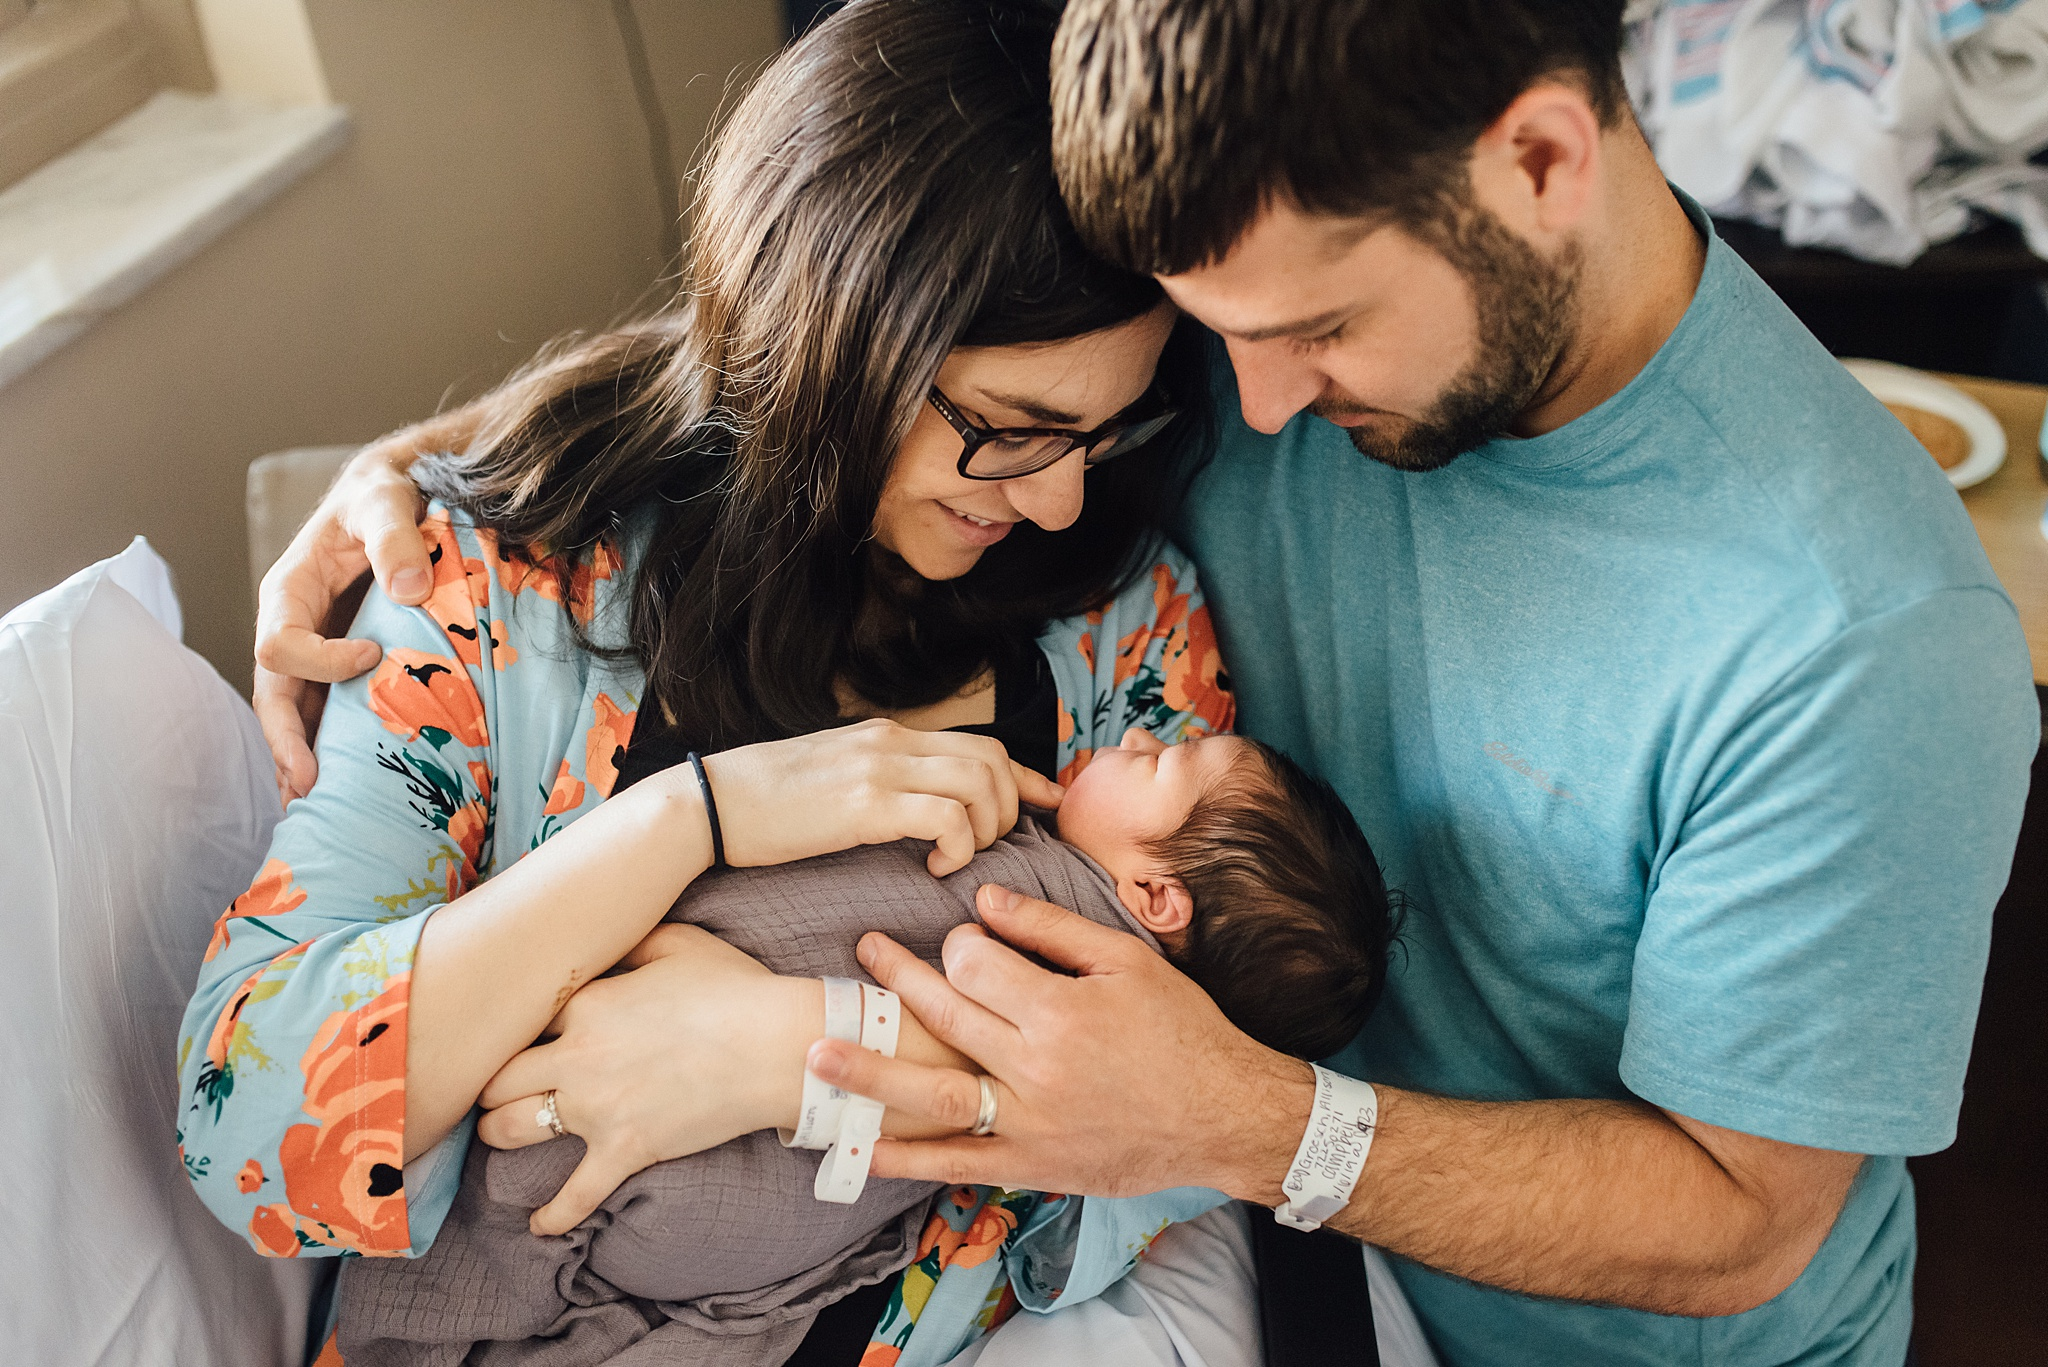 Natural-In-Home-Lifestyle-Newborn-Family-Photographer-Pittsburgh-Rachel-Rossetti-Photography_0034.jpg